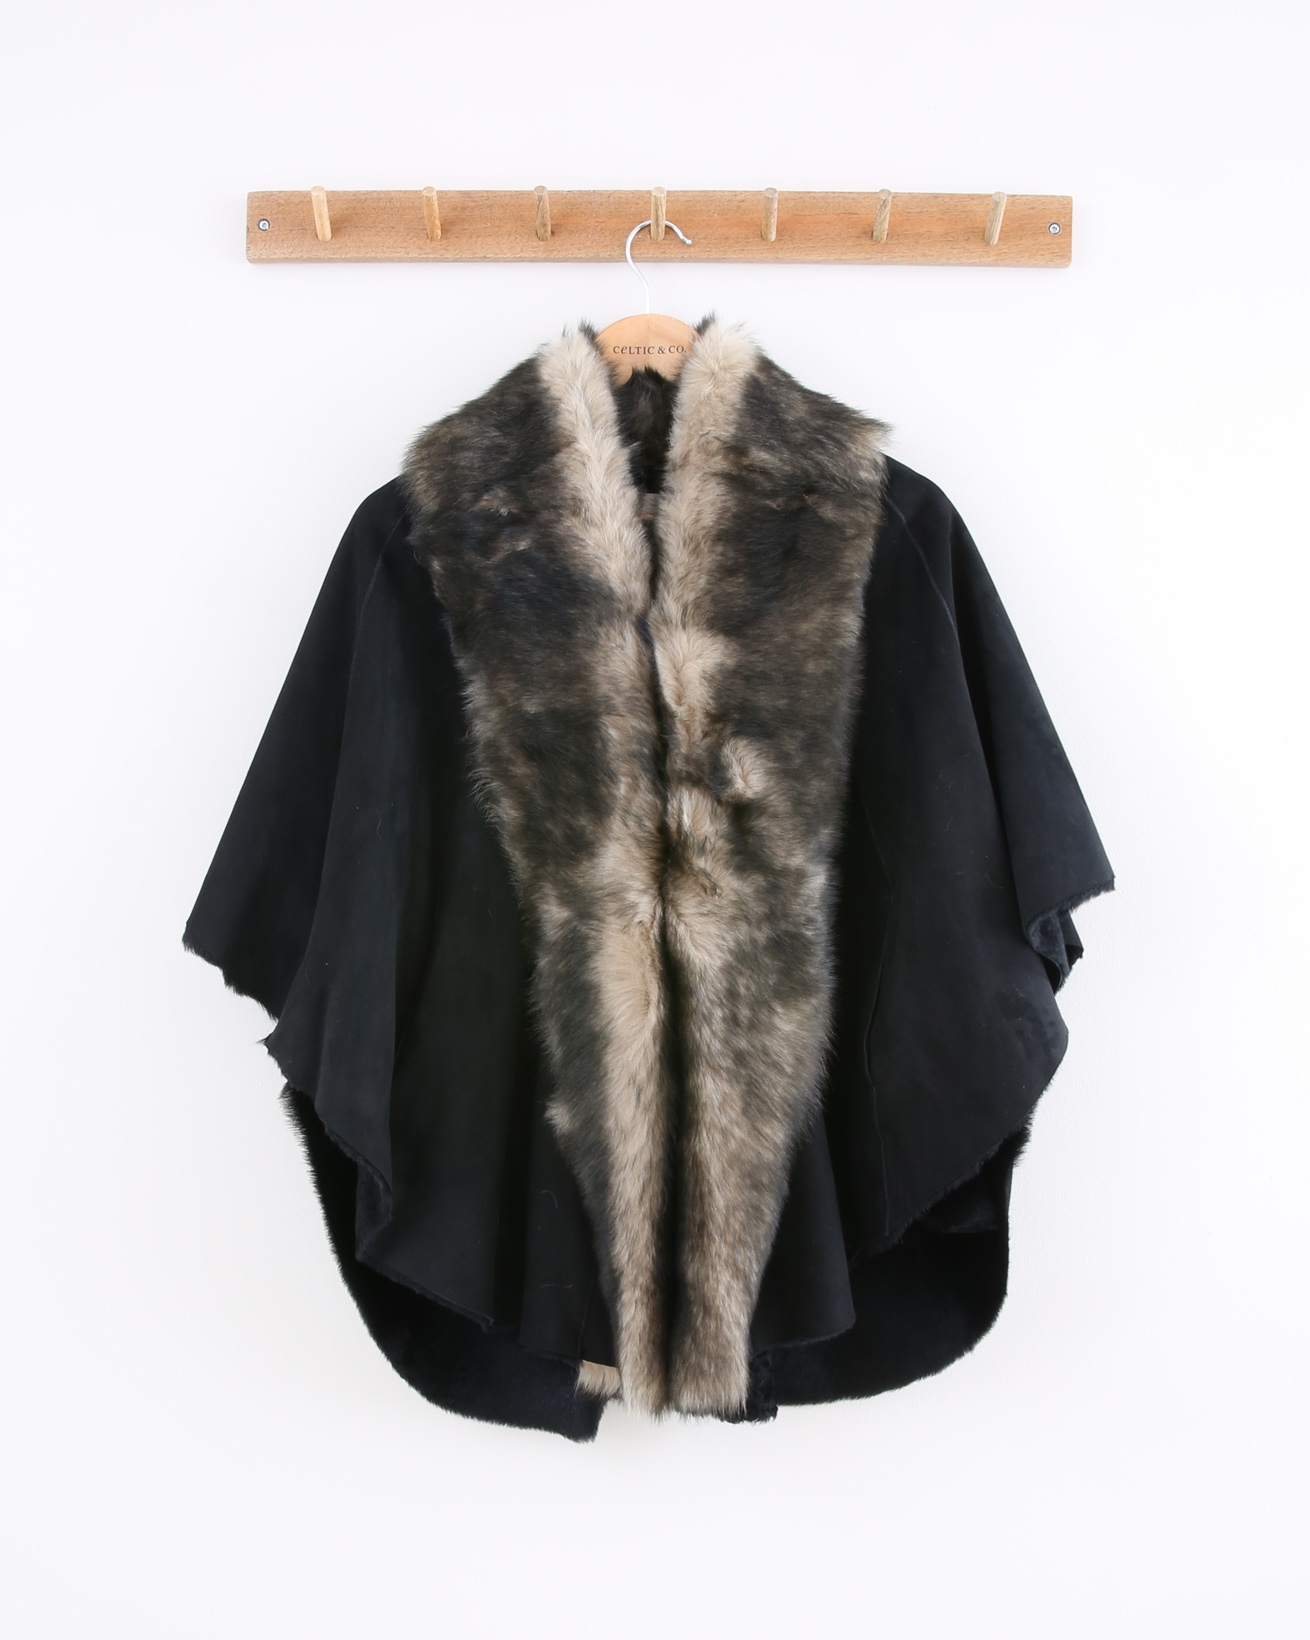 Toscana Cape - Size Small - Black with Black tipped Beige Fur - 1483